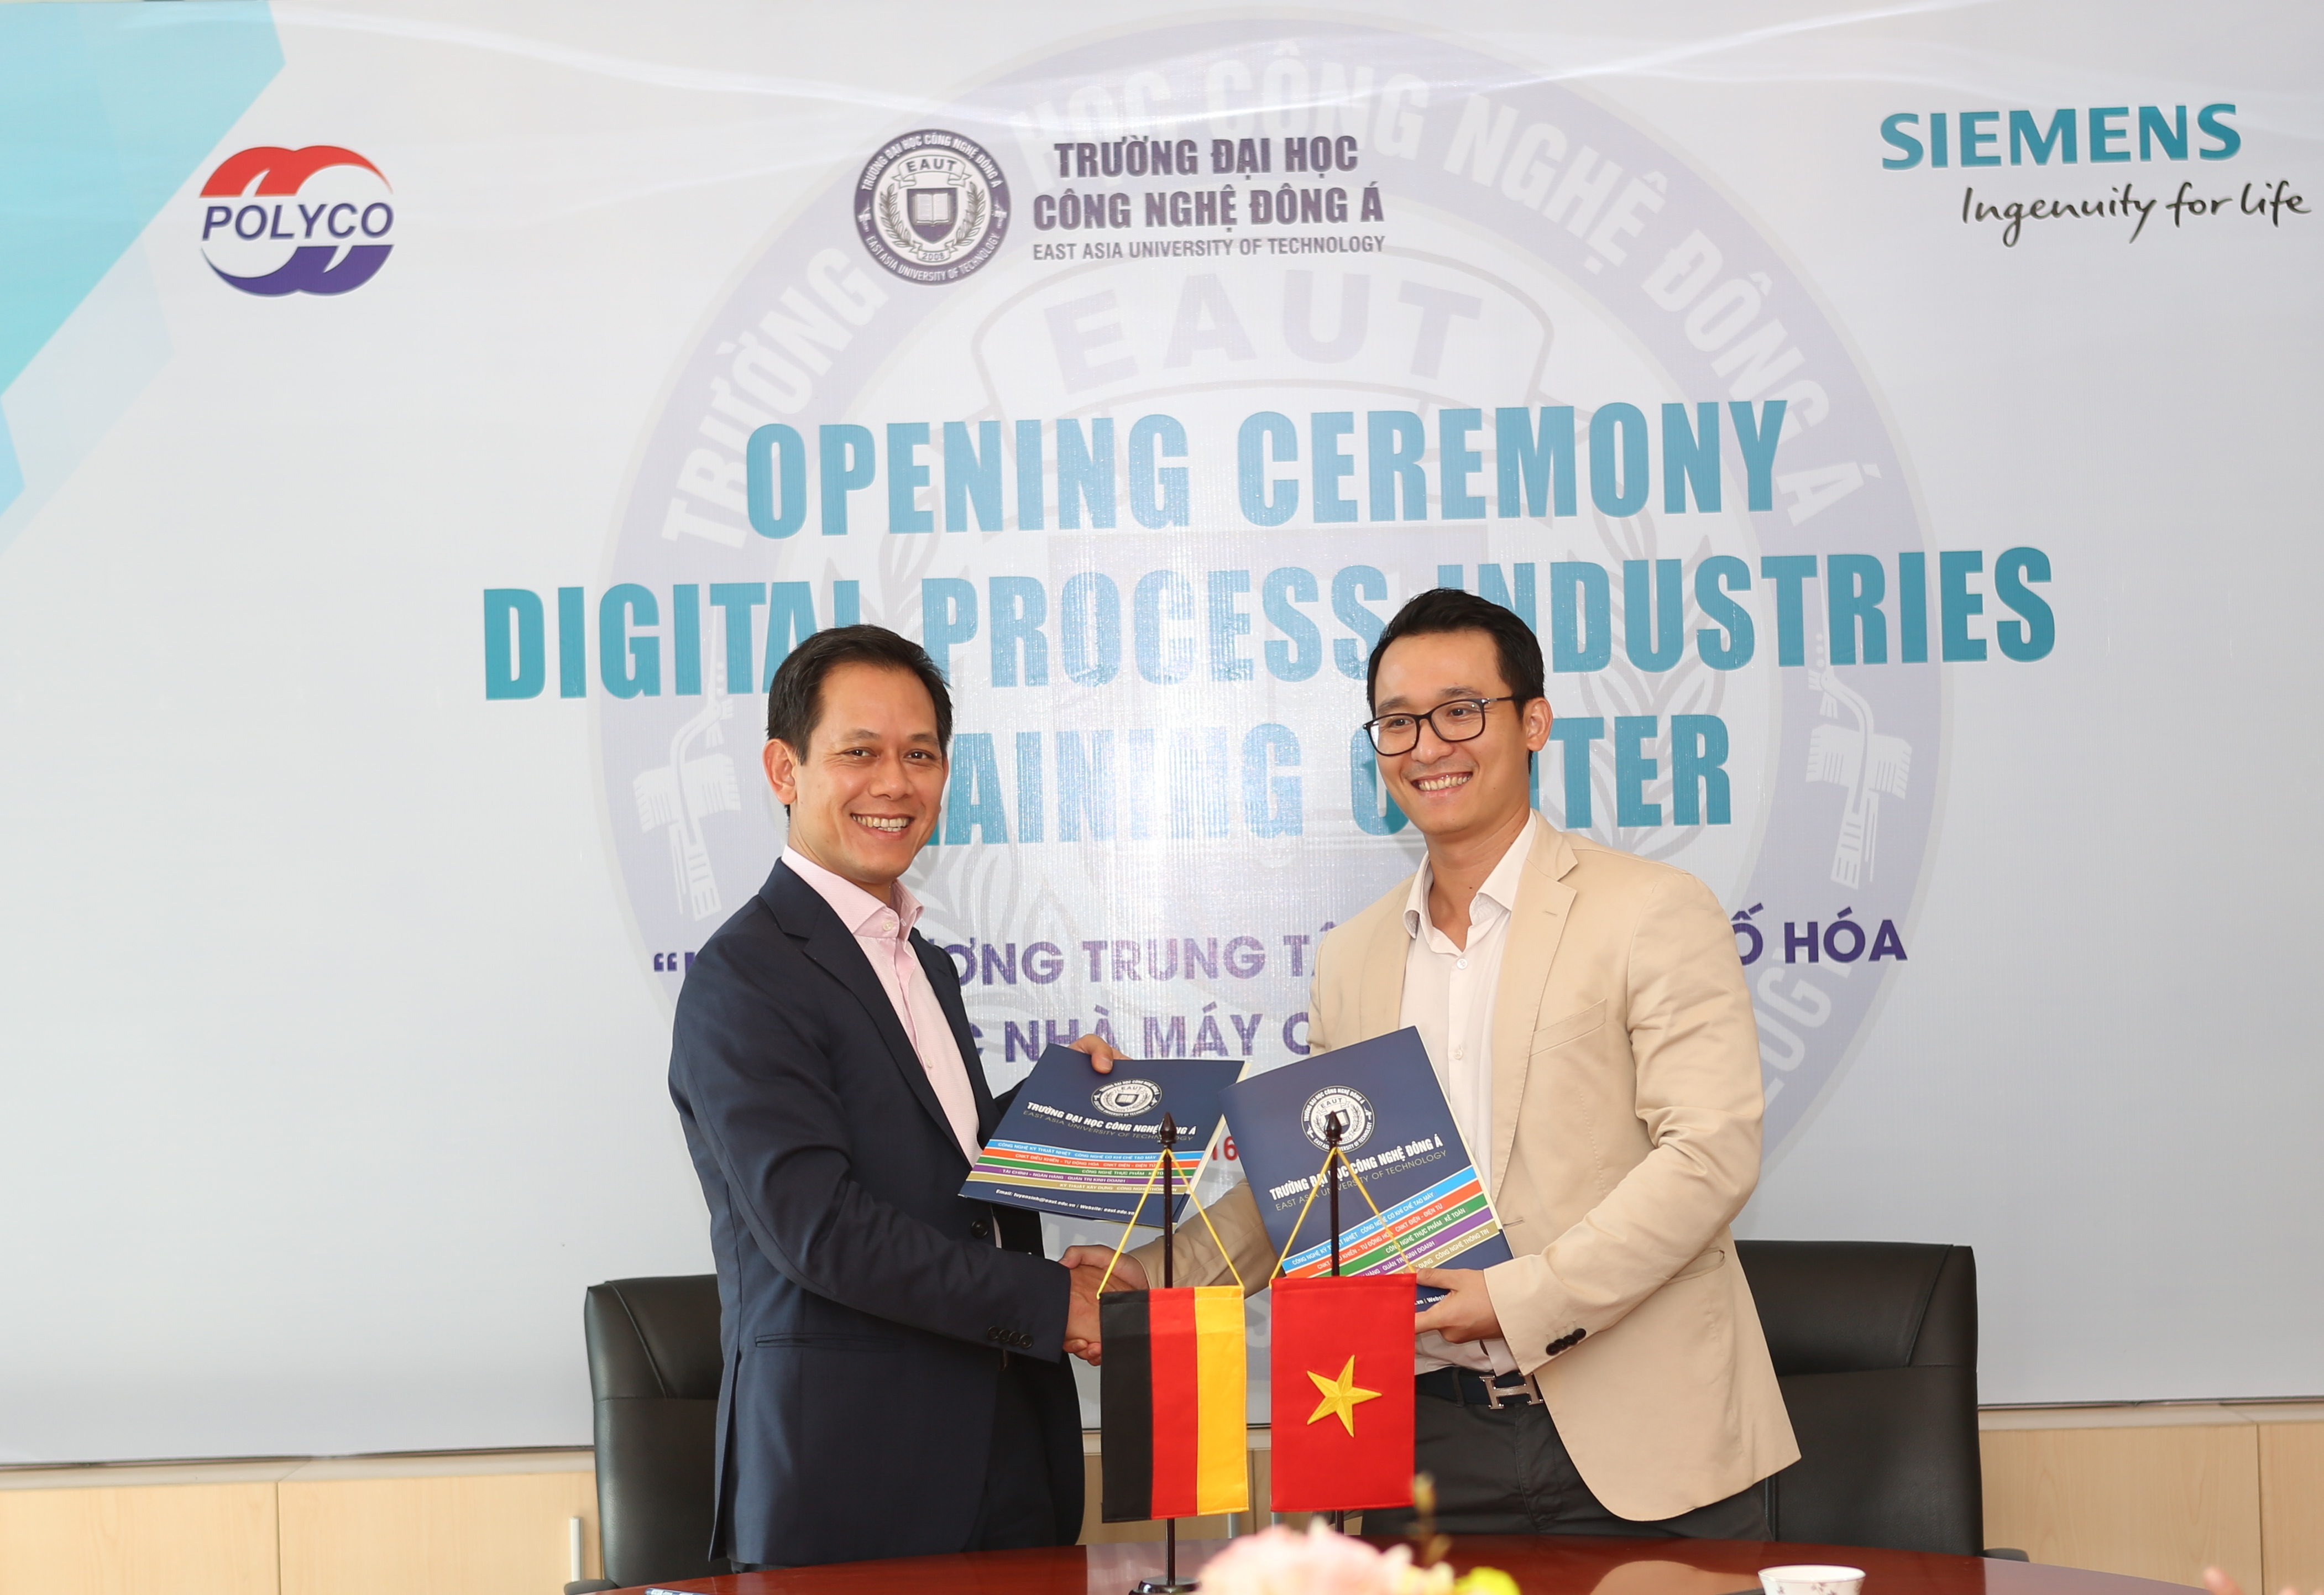 training centre powered by siemens technologies now open